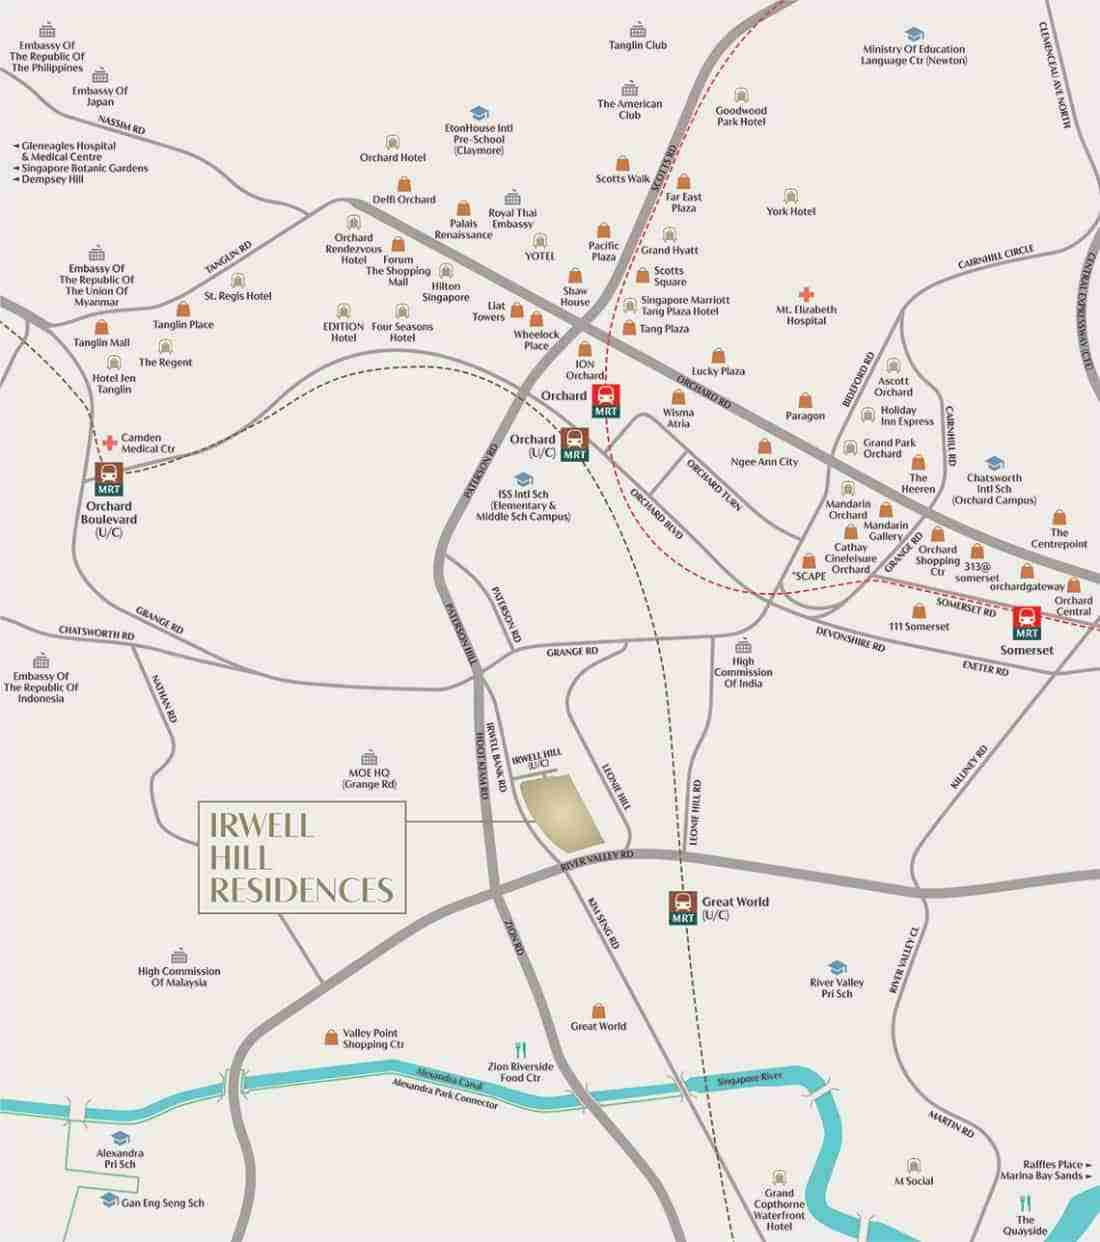 Irwell Hill Residences Location Map